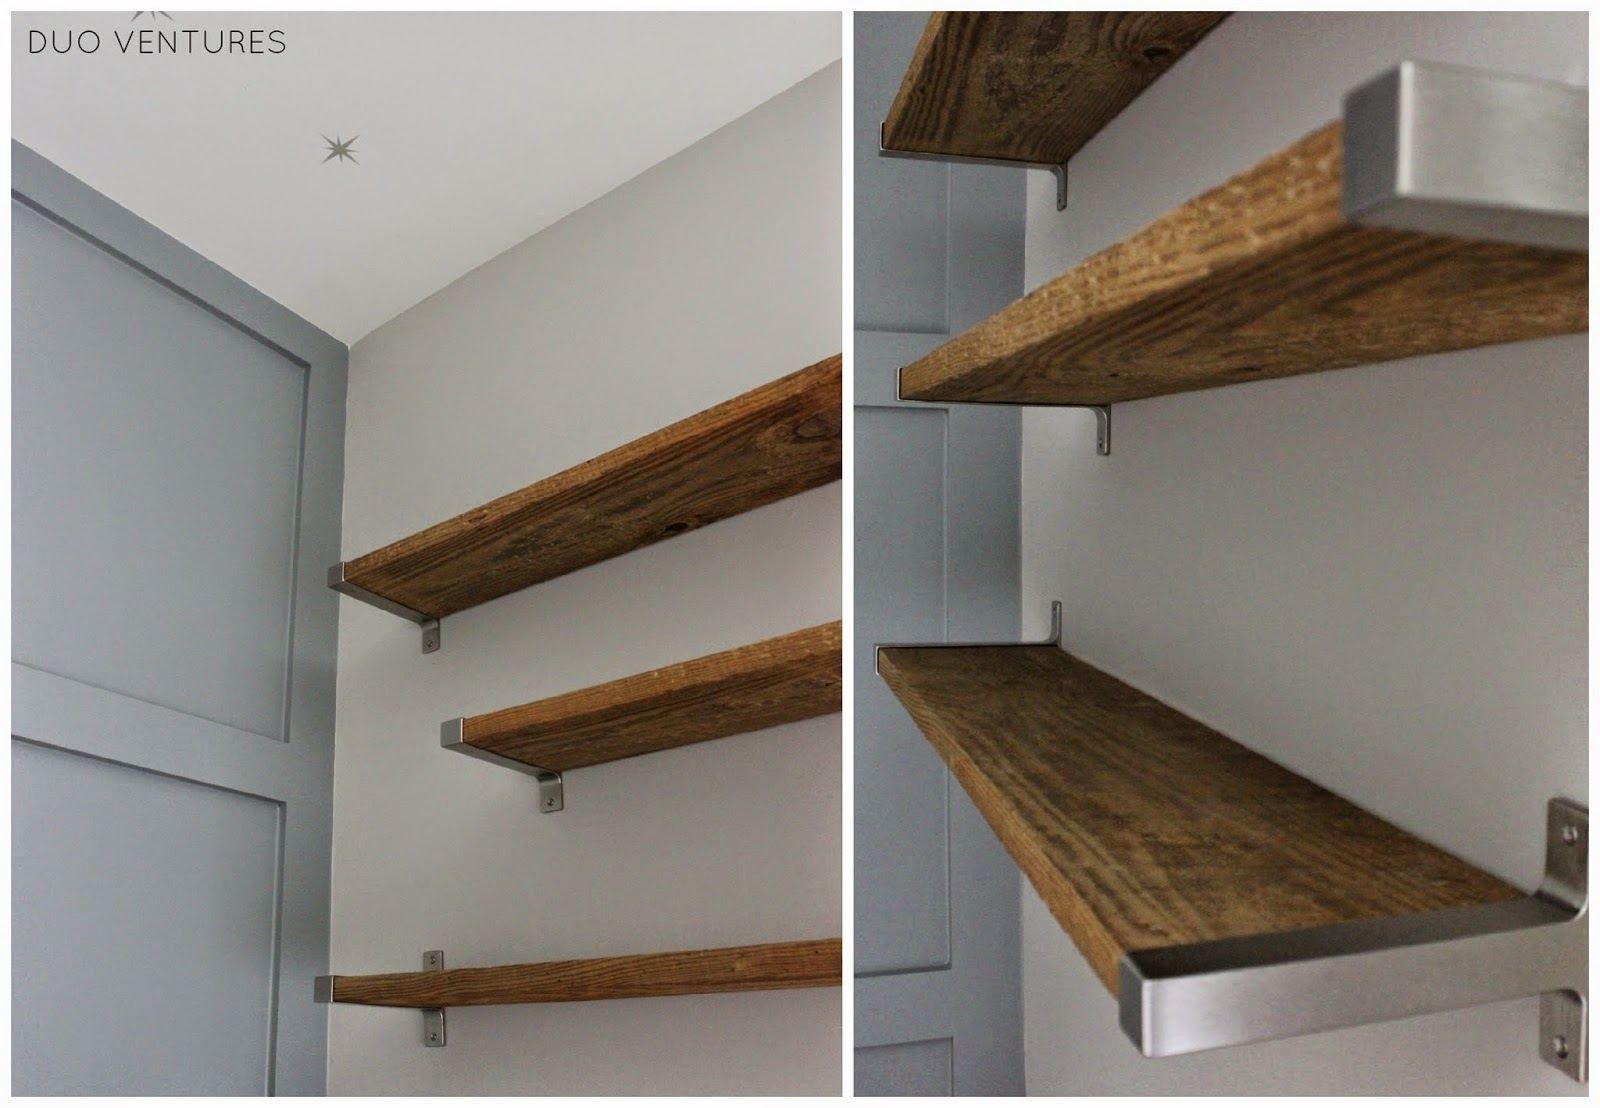 Duo Ventures The Nursery DIY Reclaimed Barnwood Shelves